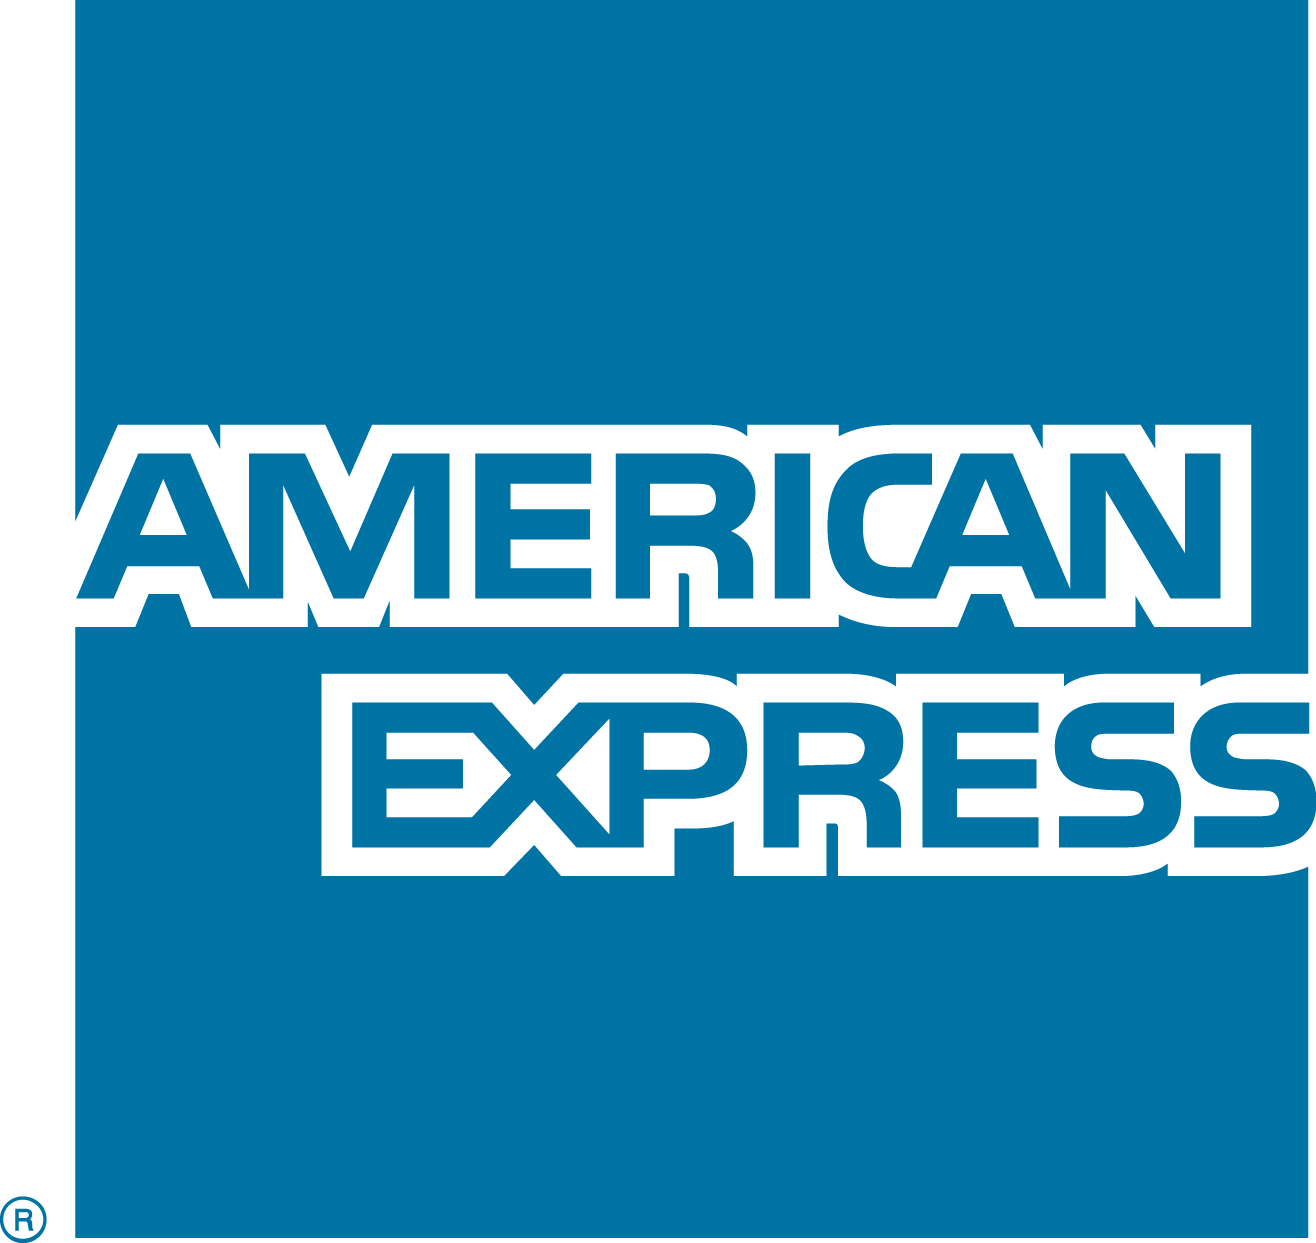 american express logo vector eps free download logo icons clipart rh freelogovectors net american express logo vector file american express free vector